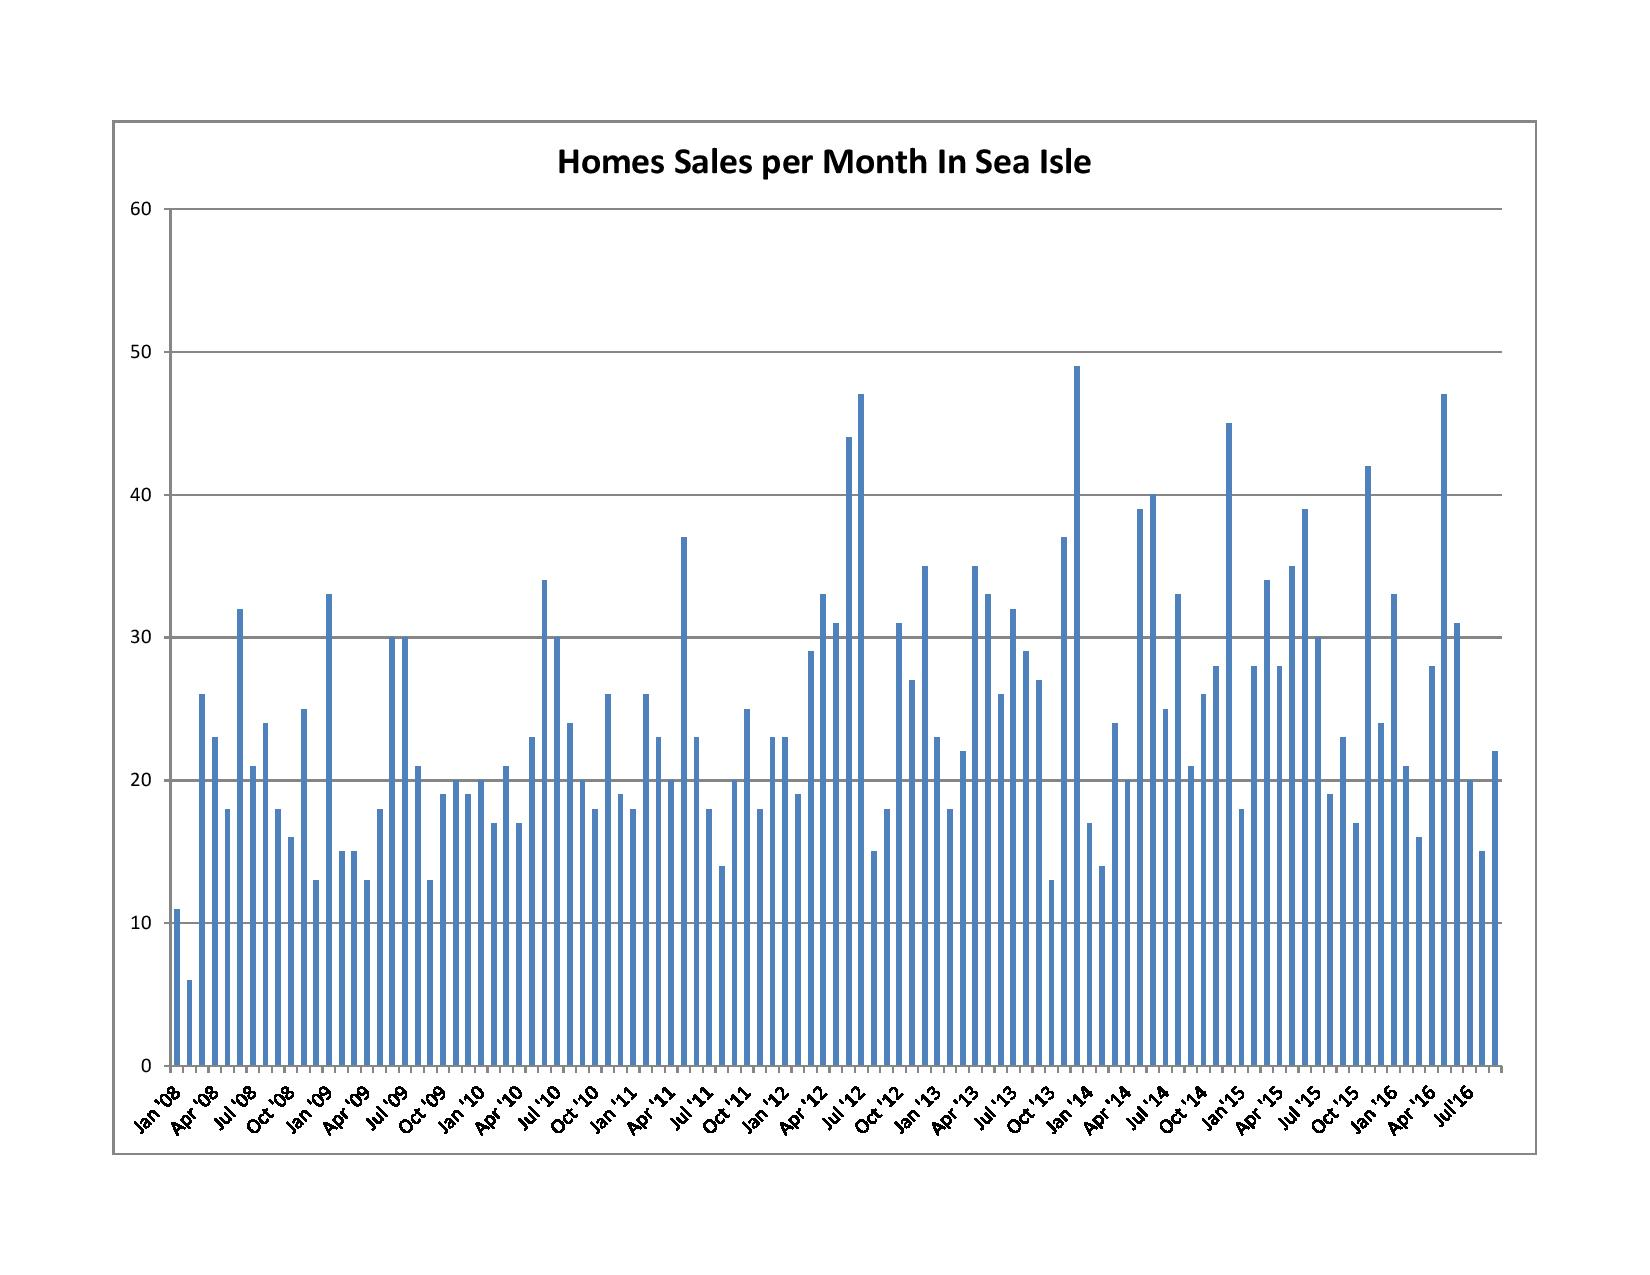 Homes Sold per Month in Sea Isle